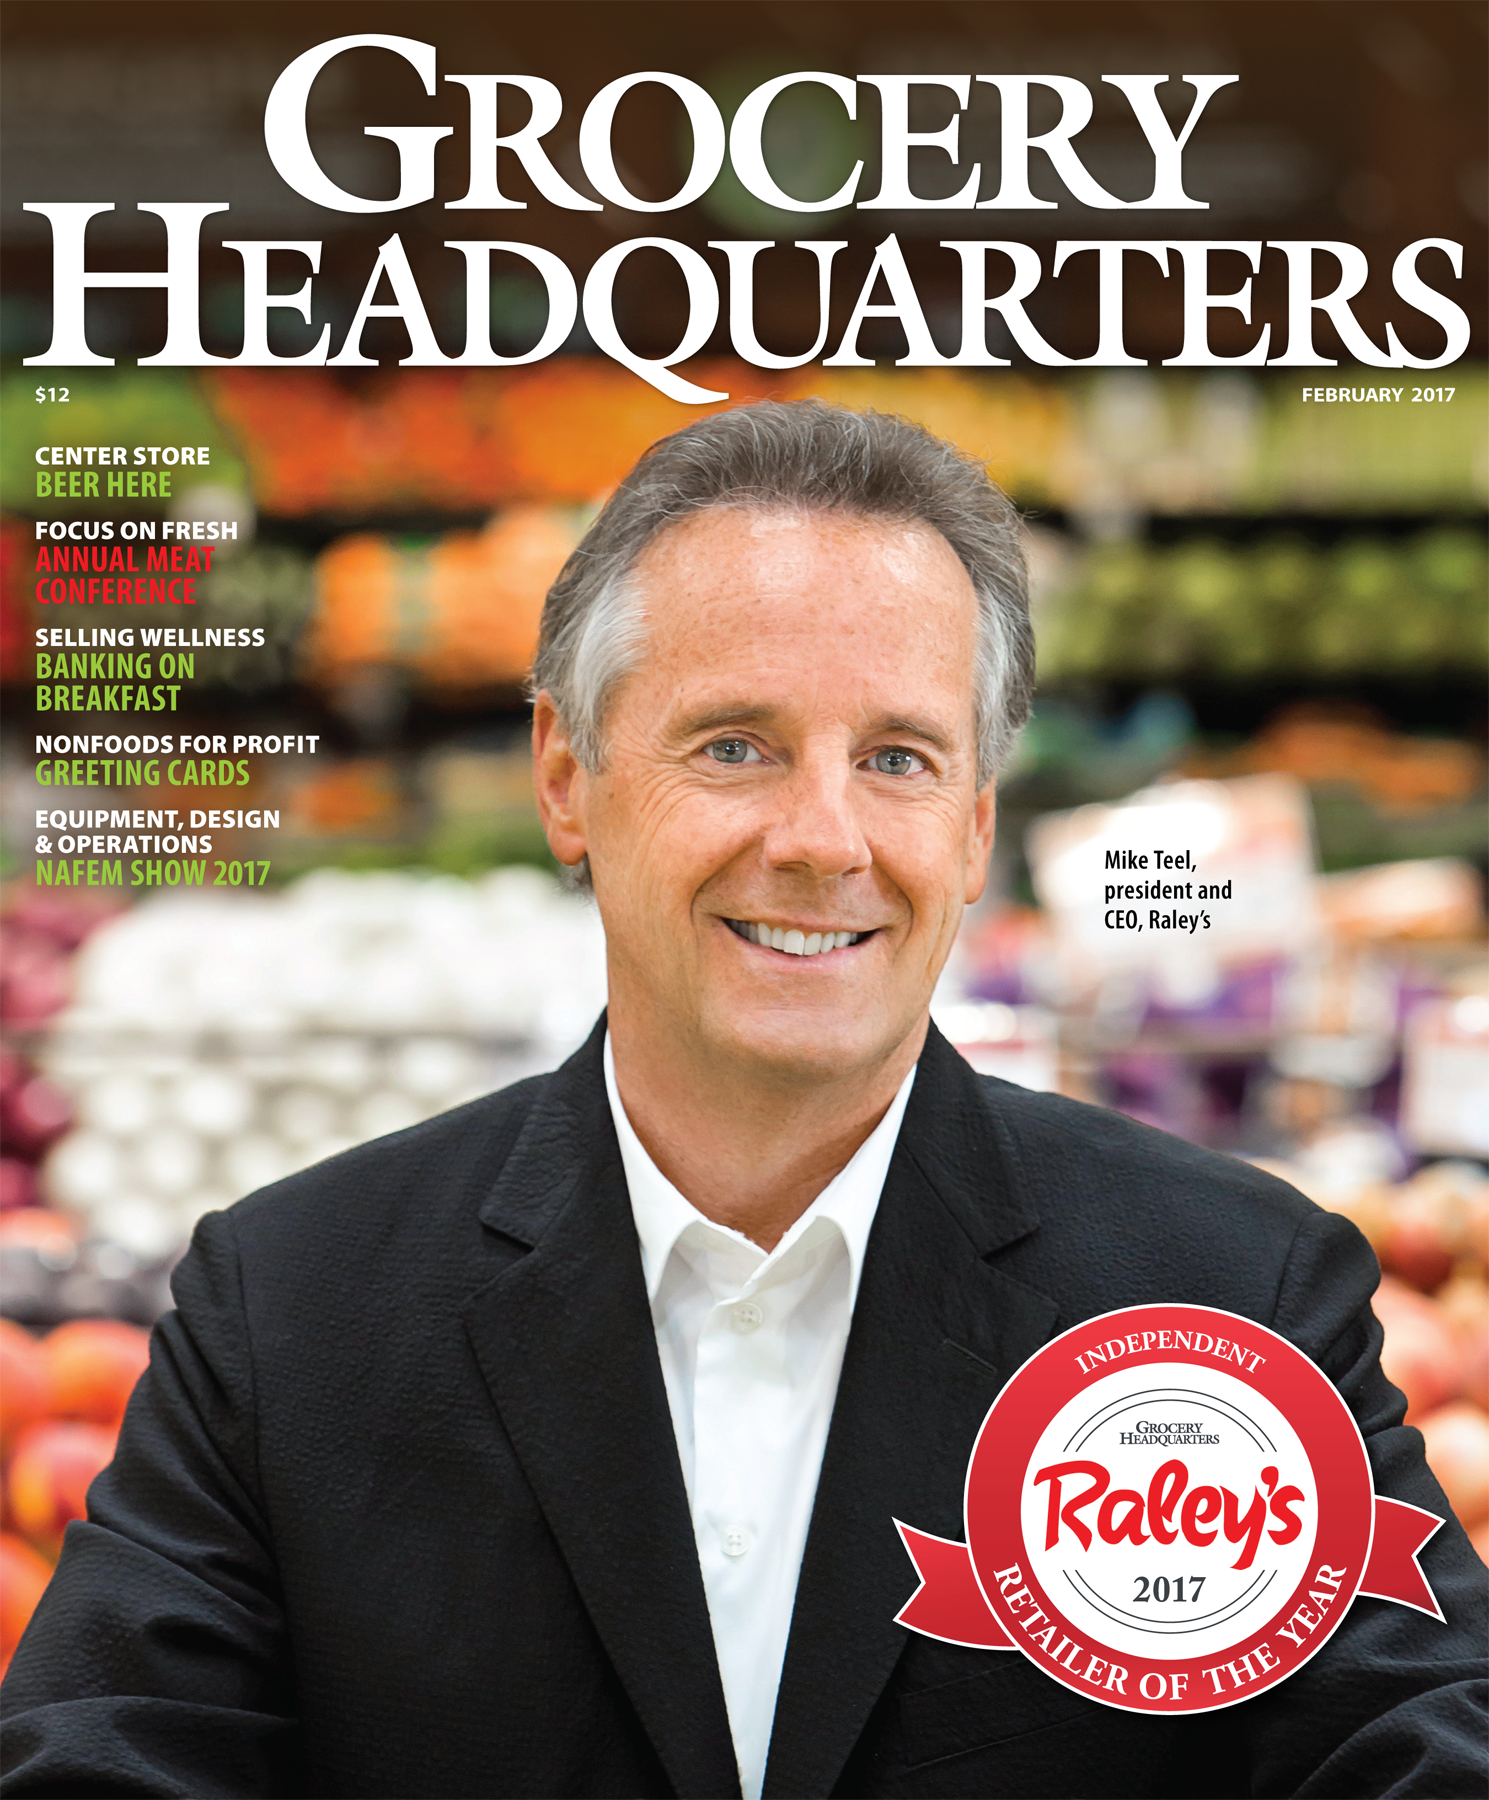 Winsight Grocery Business Magazine February 2017 Issue